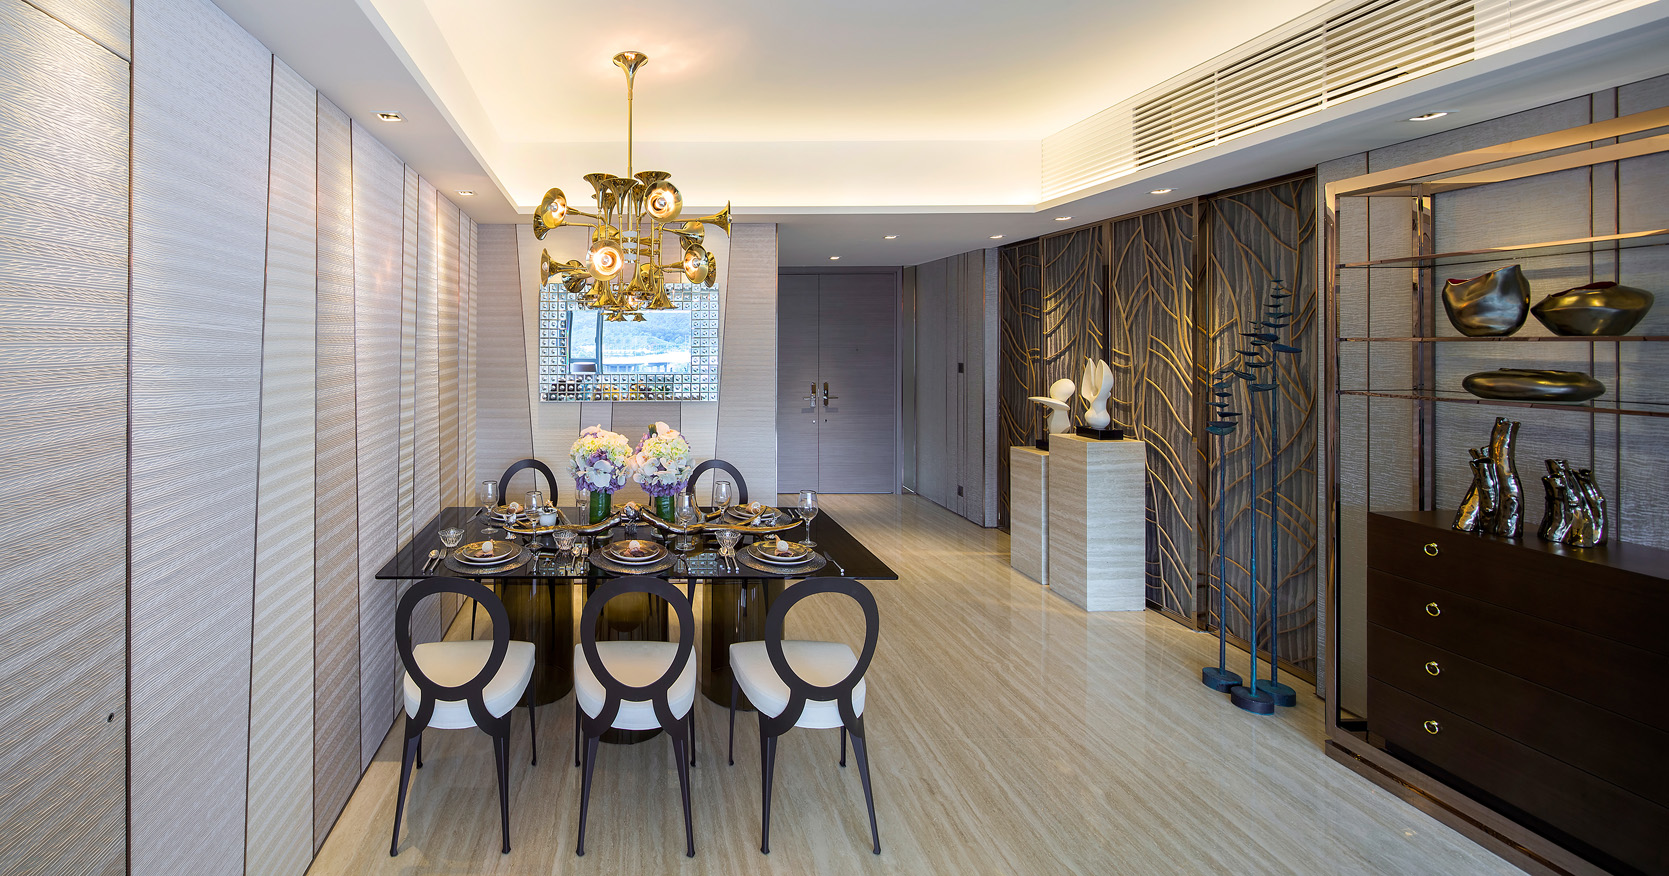 Dining room lighting ideas for a luxury interior luxury lighting ideas 8 Luxury Lighting Ideas That Revolutionize Every Room Dining room lighting ideas Delightfull Botti luxury lighting ideas 8 Luxury Lighting Ideas That Revolutionize Every Room Dining room lighting ideas Delightfull Botti